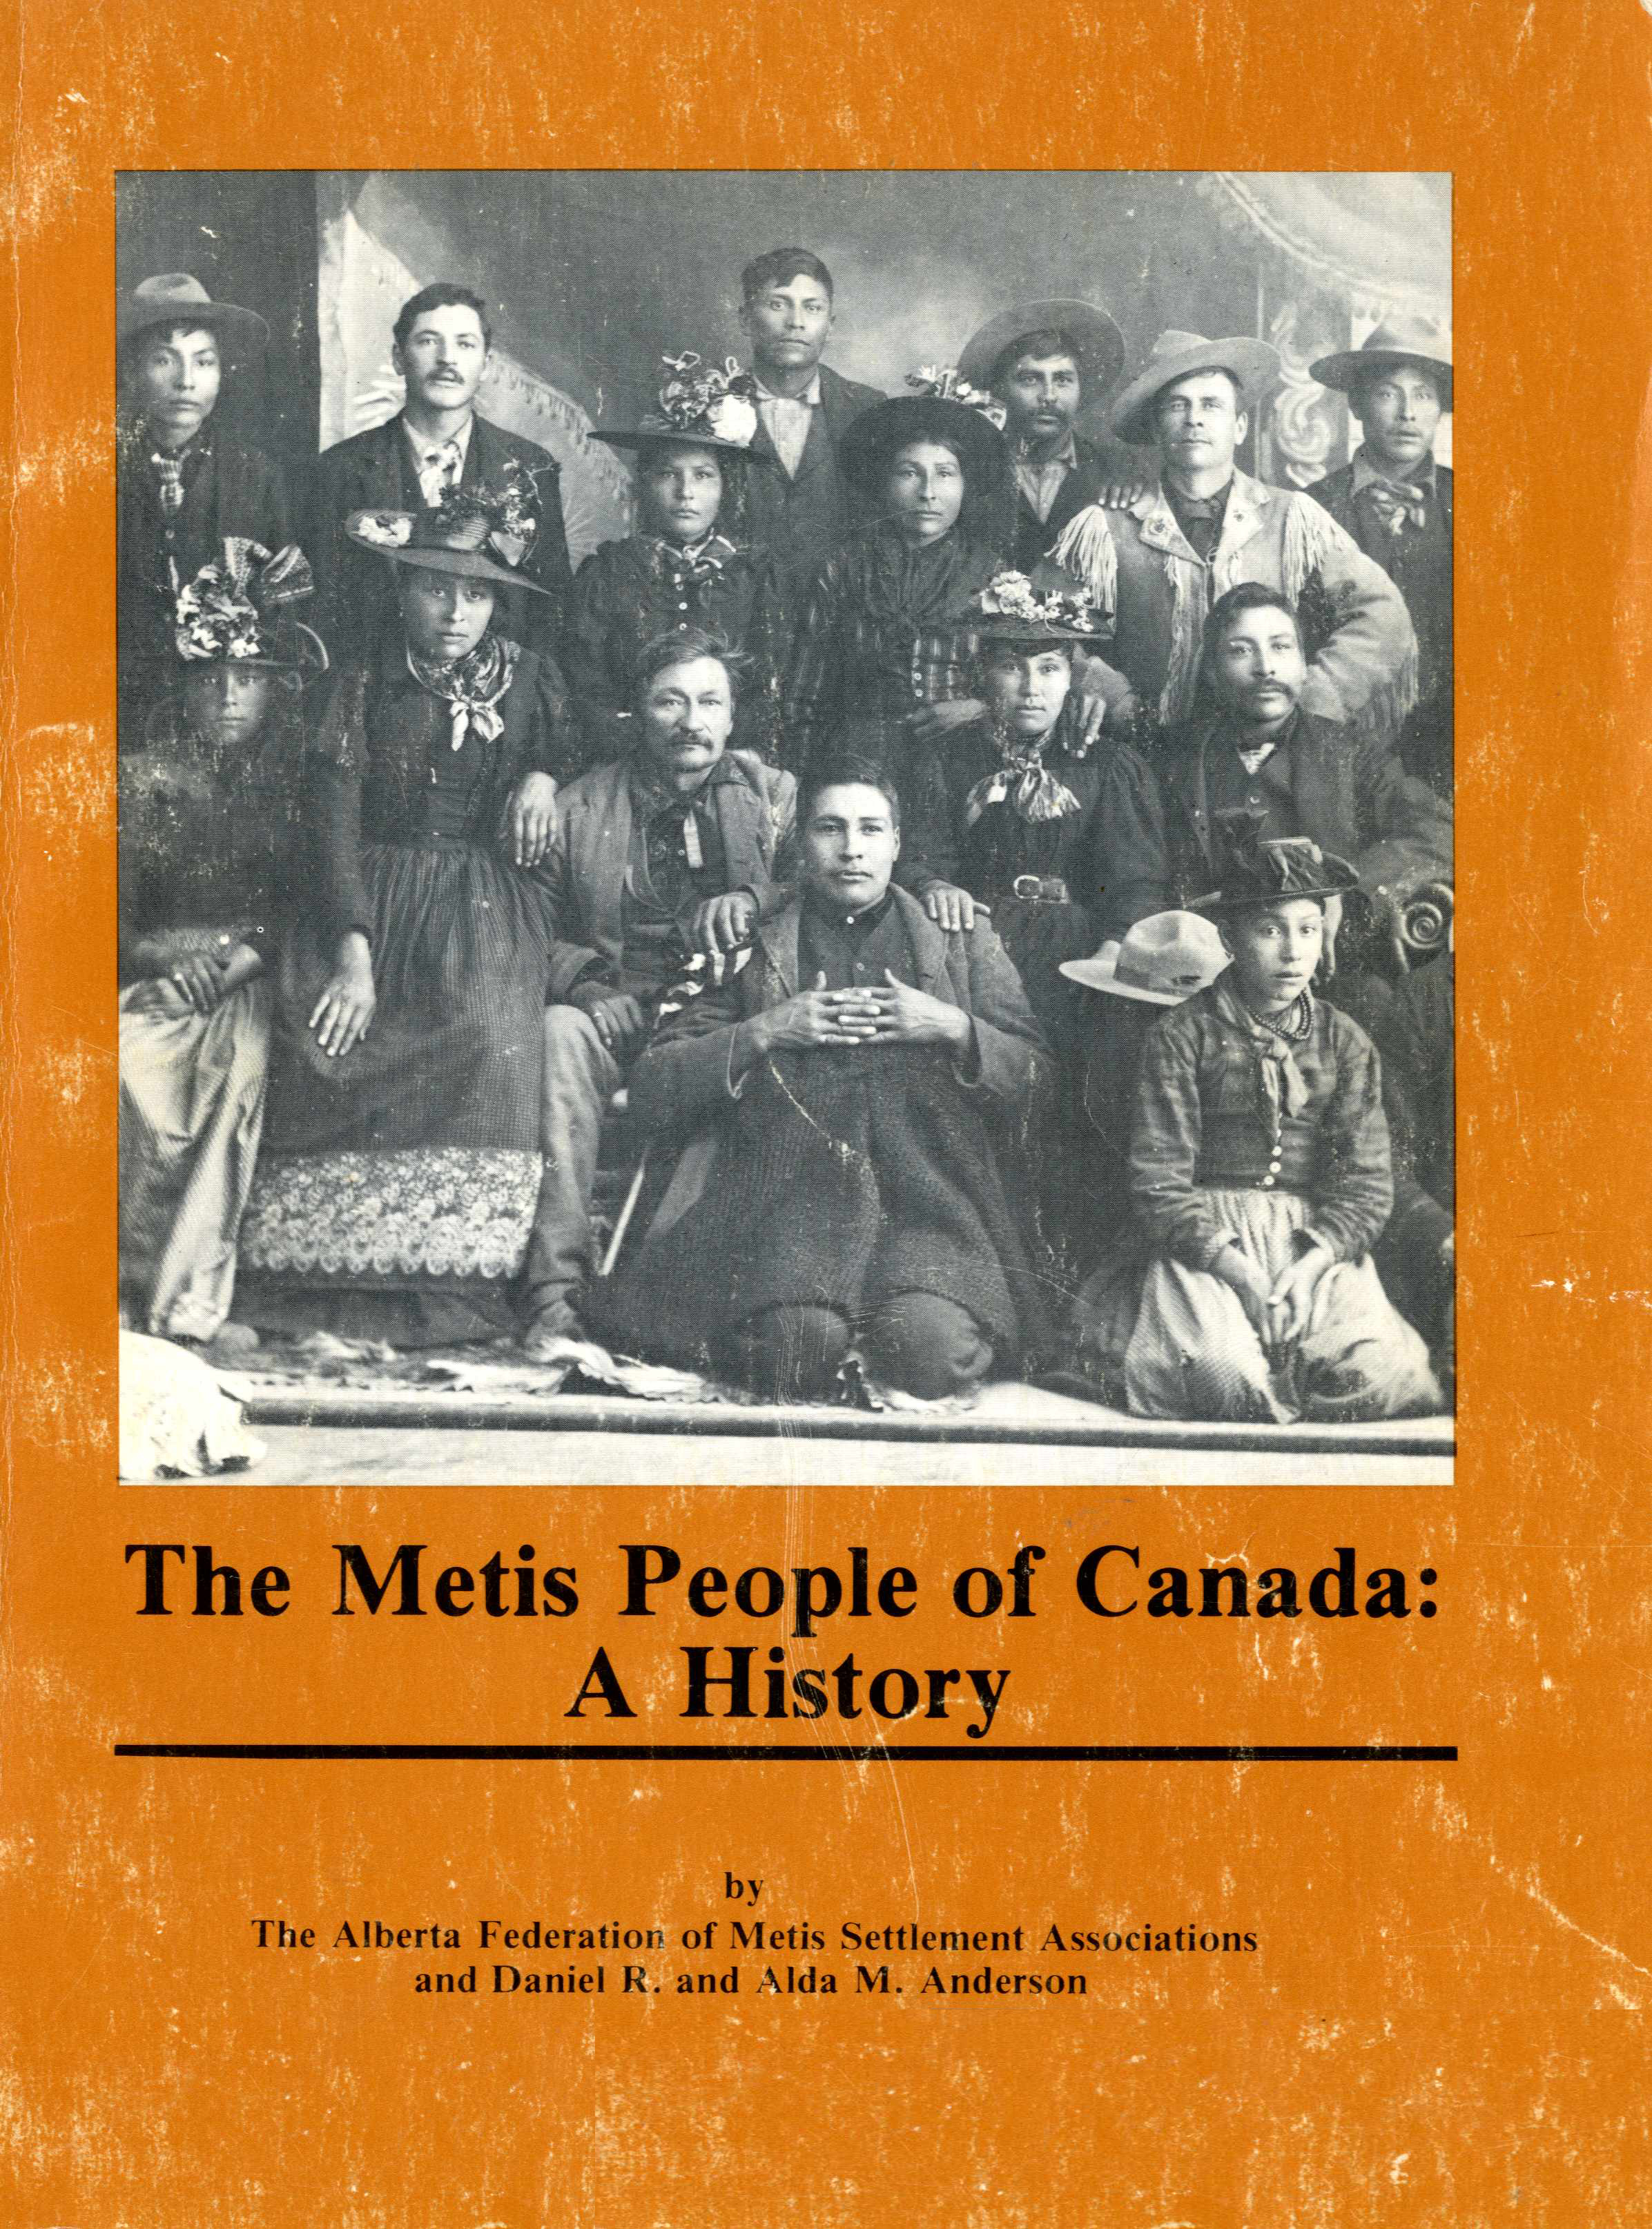 The Metis People of Canada: A History Image